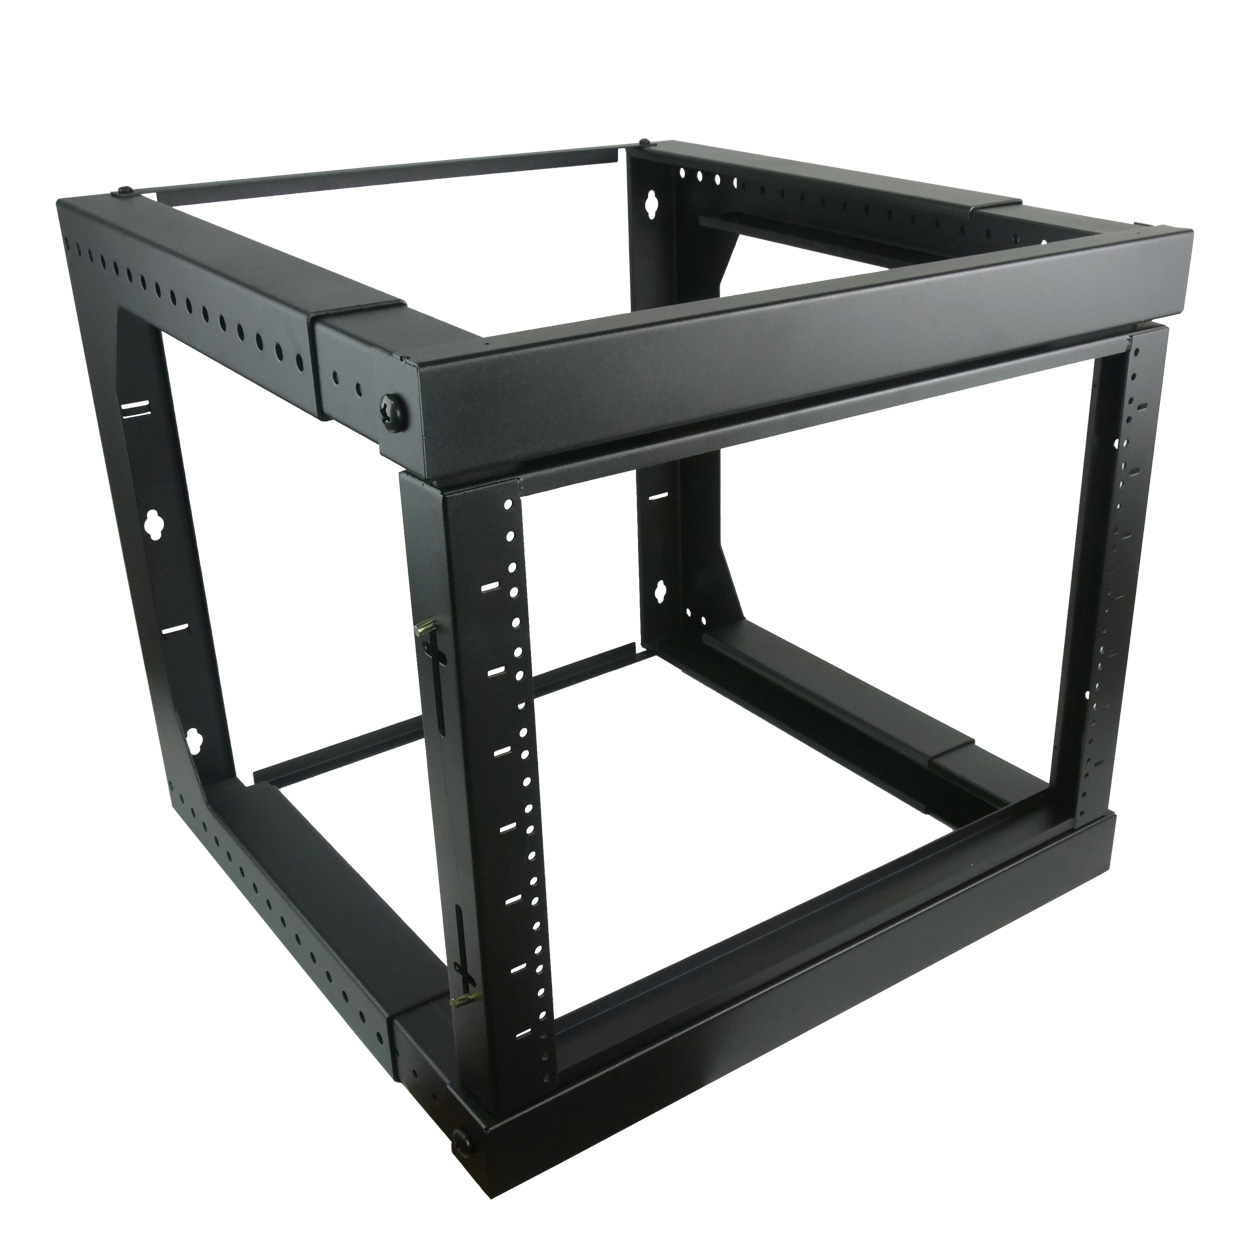 12U Swing-Out Wall Mount Rack Adjustable Depth